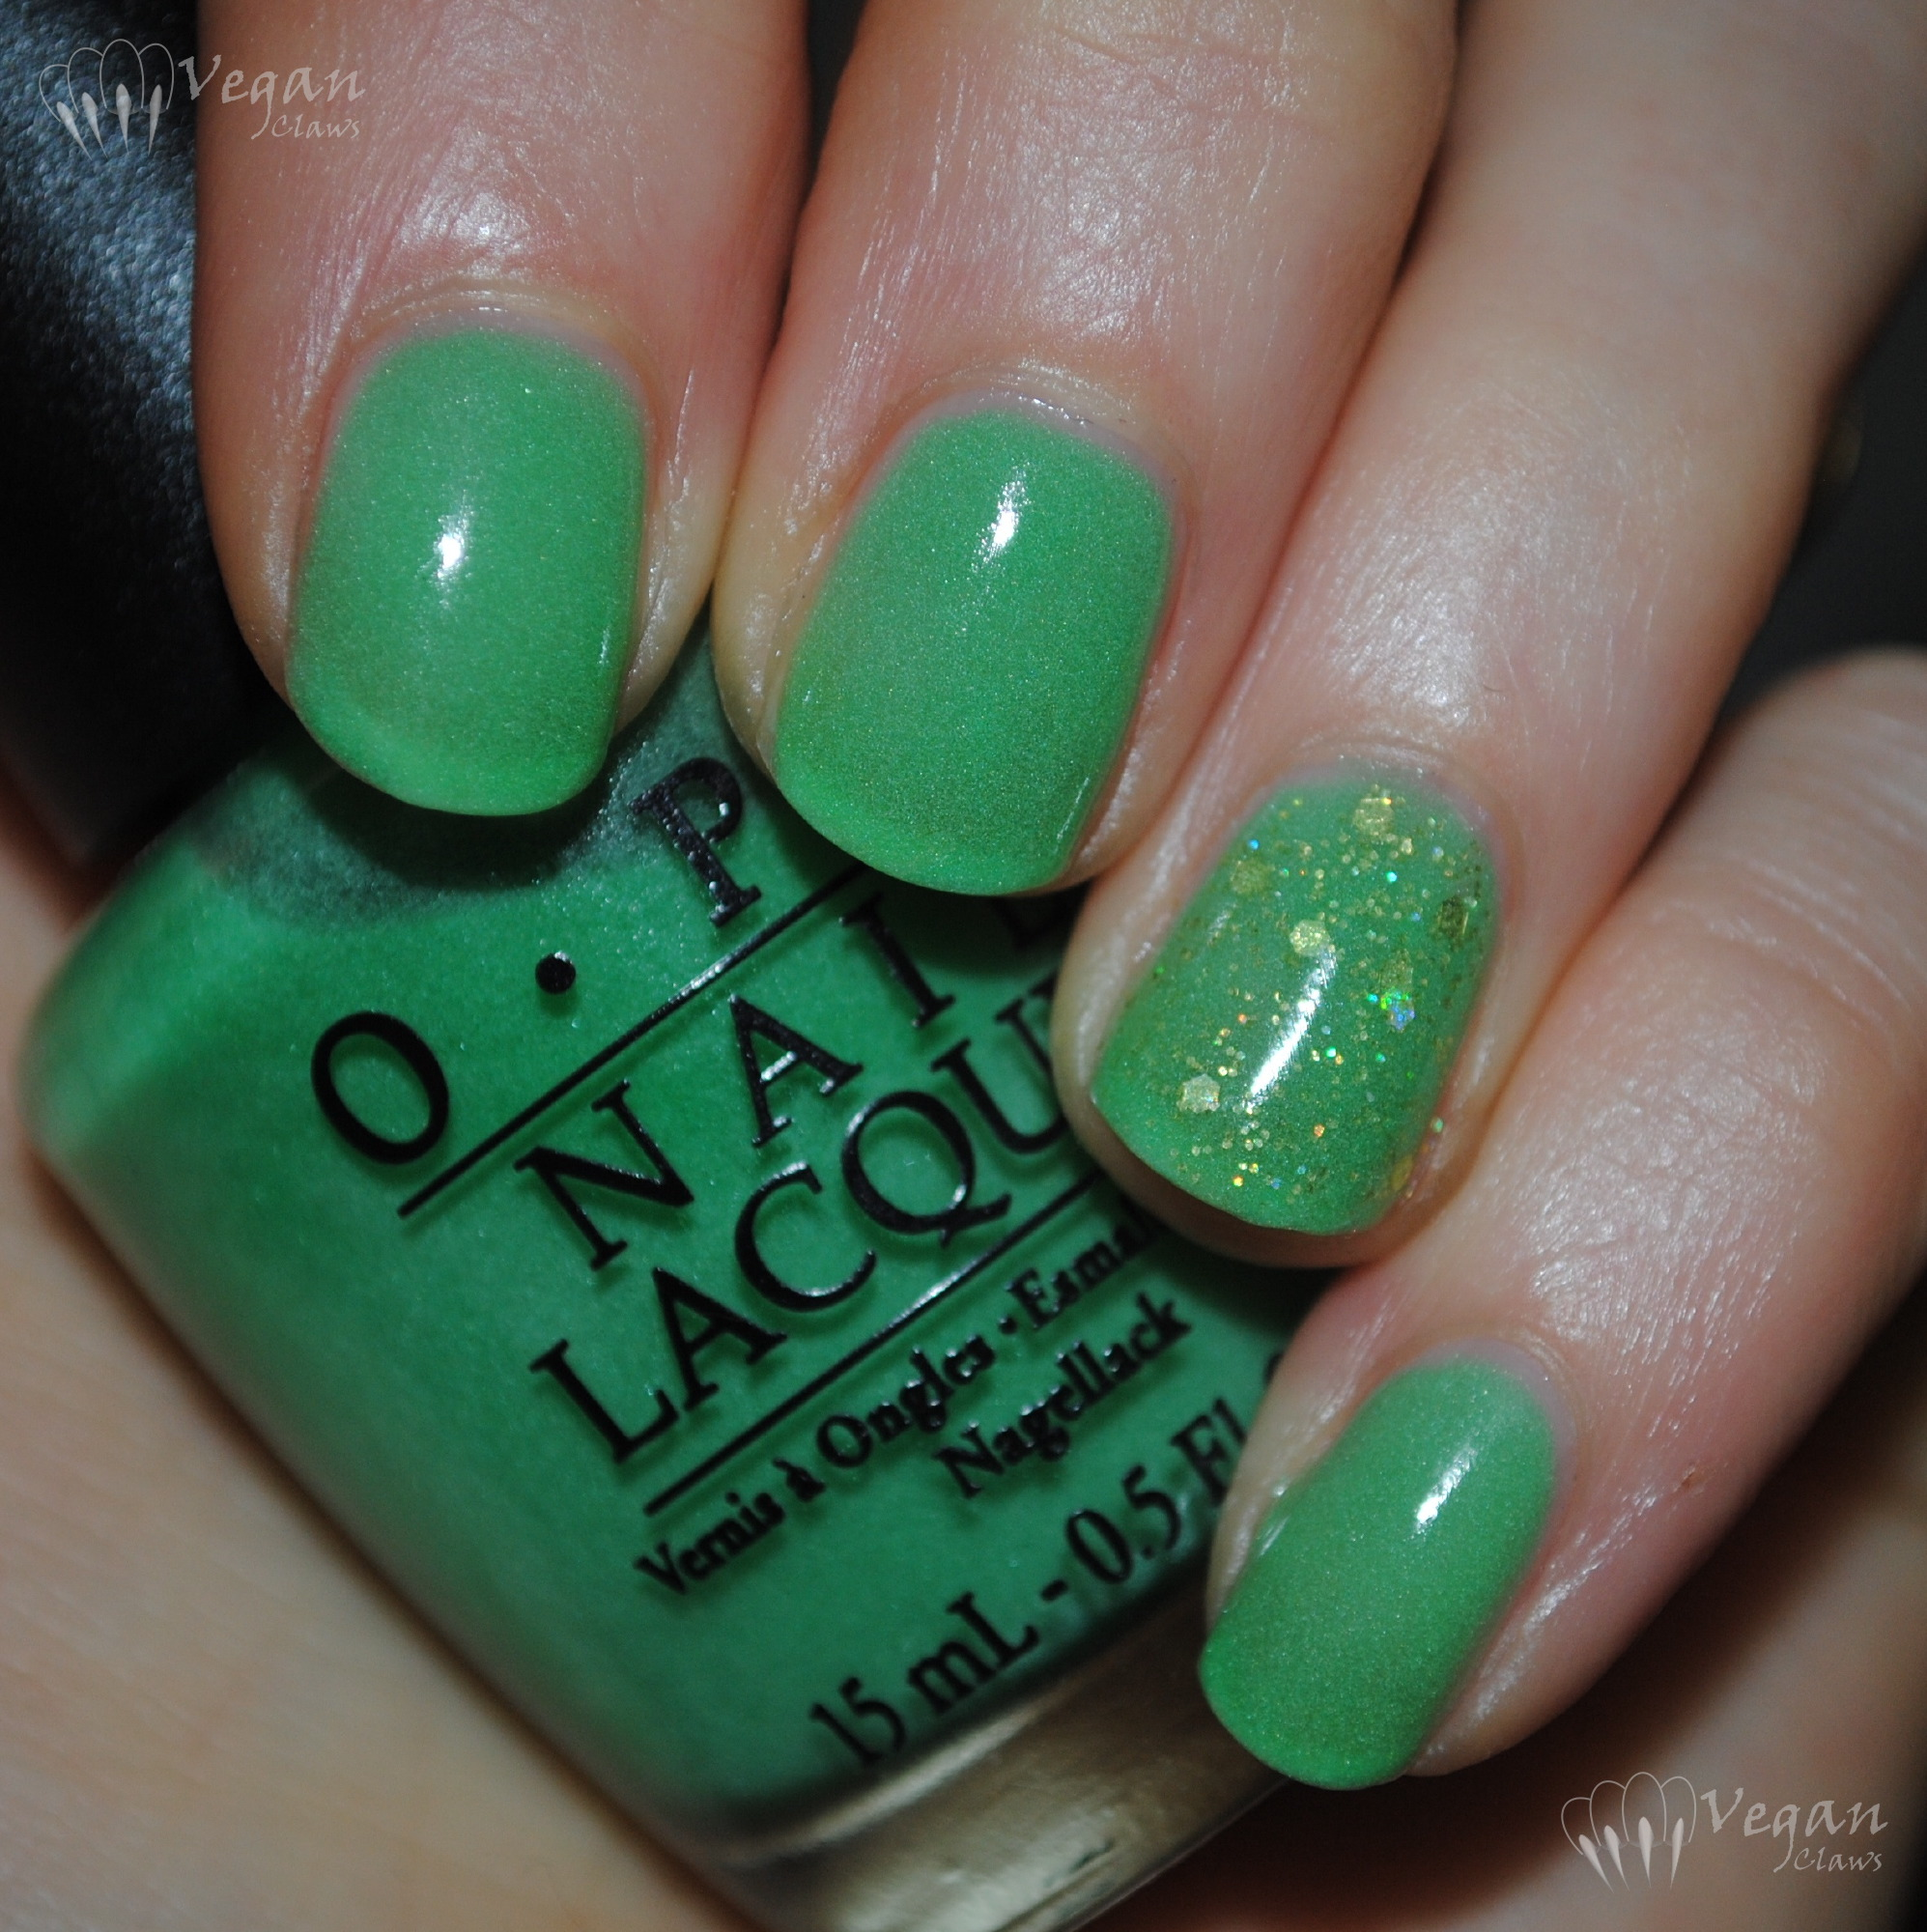 OPI Zom-body to Love and LA Girl Synergy | Vegan Claws